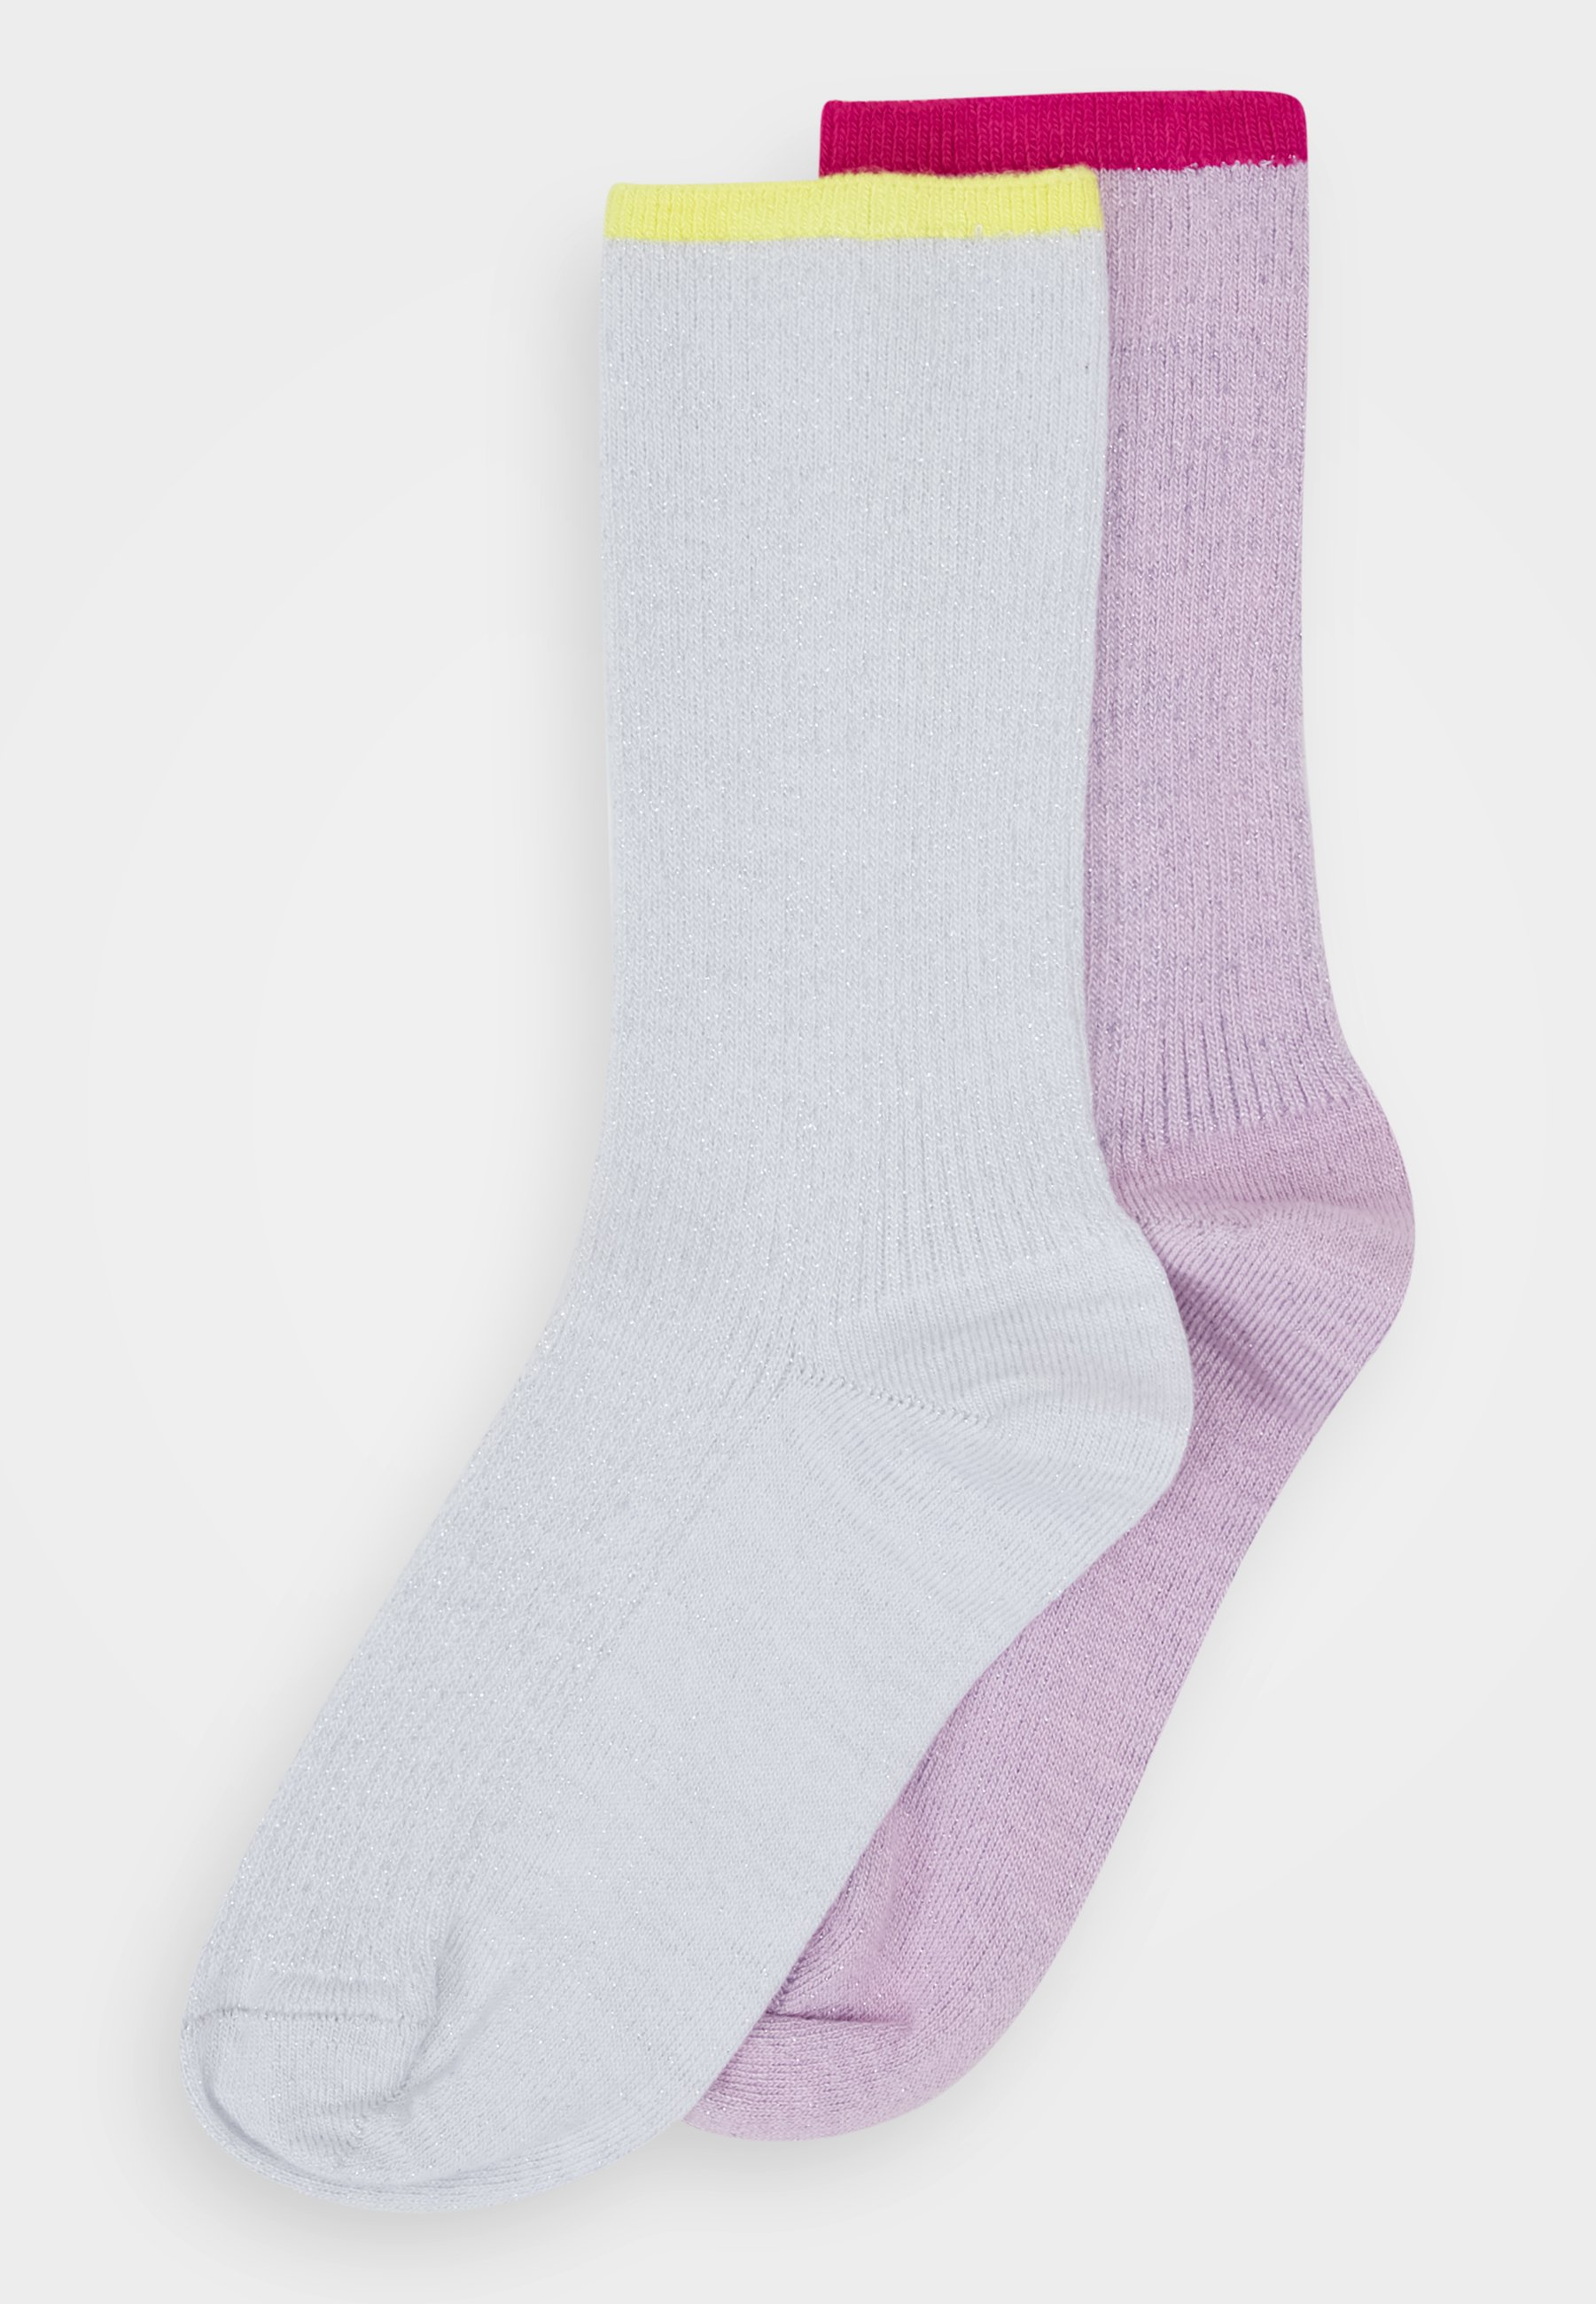 Femme MARIONA CREW SOCK 2 PACK - Chaussettes